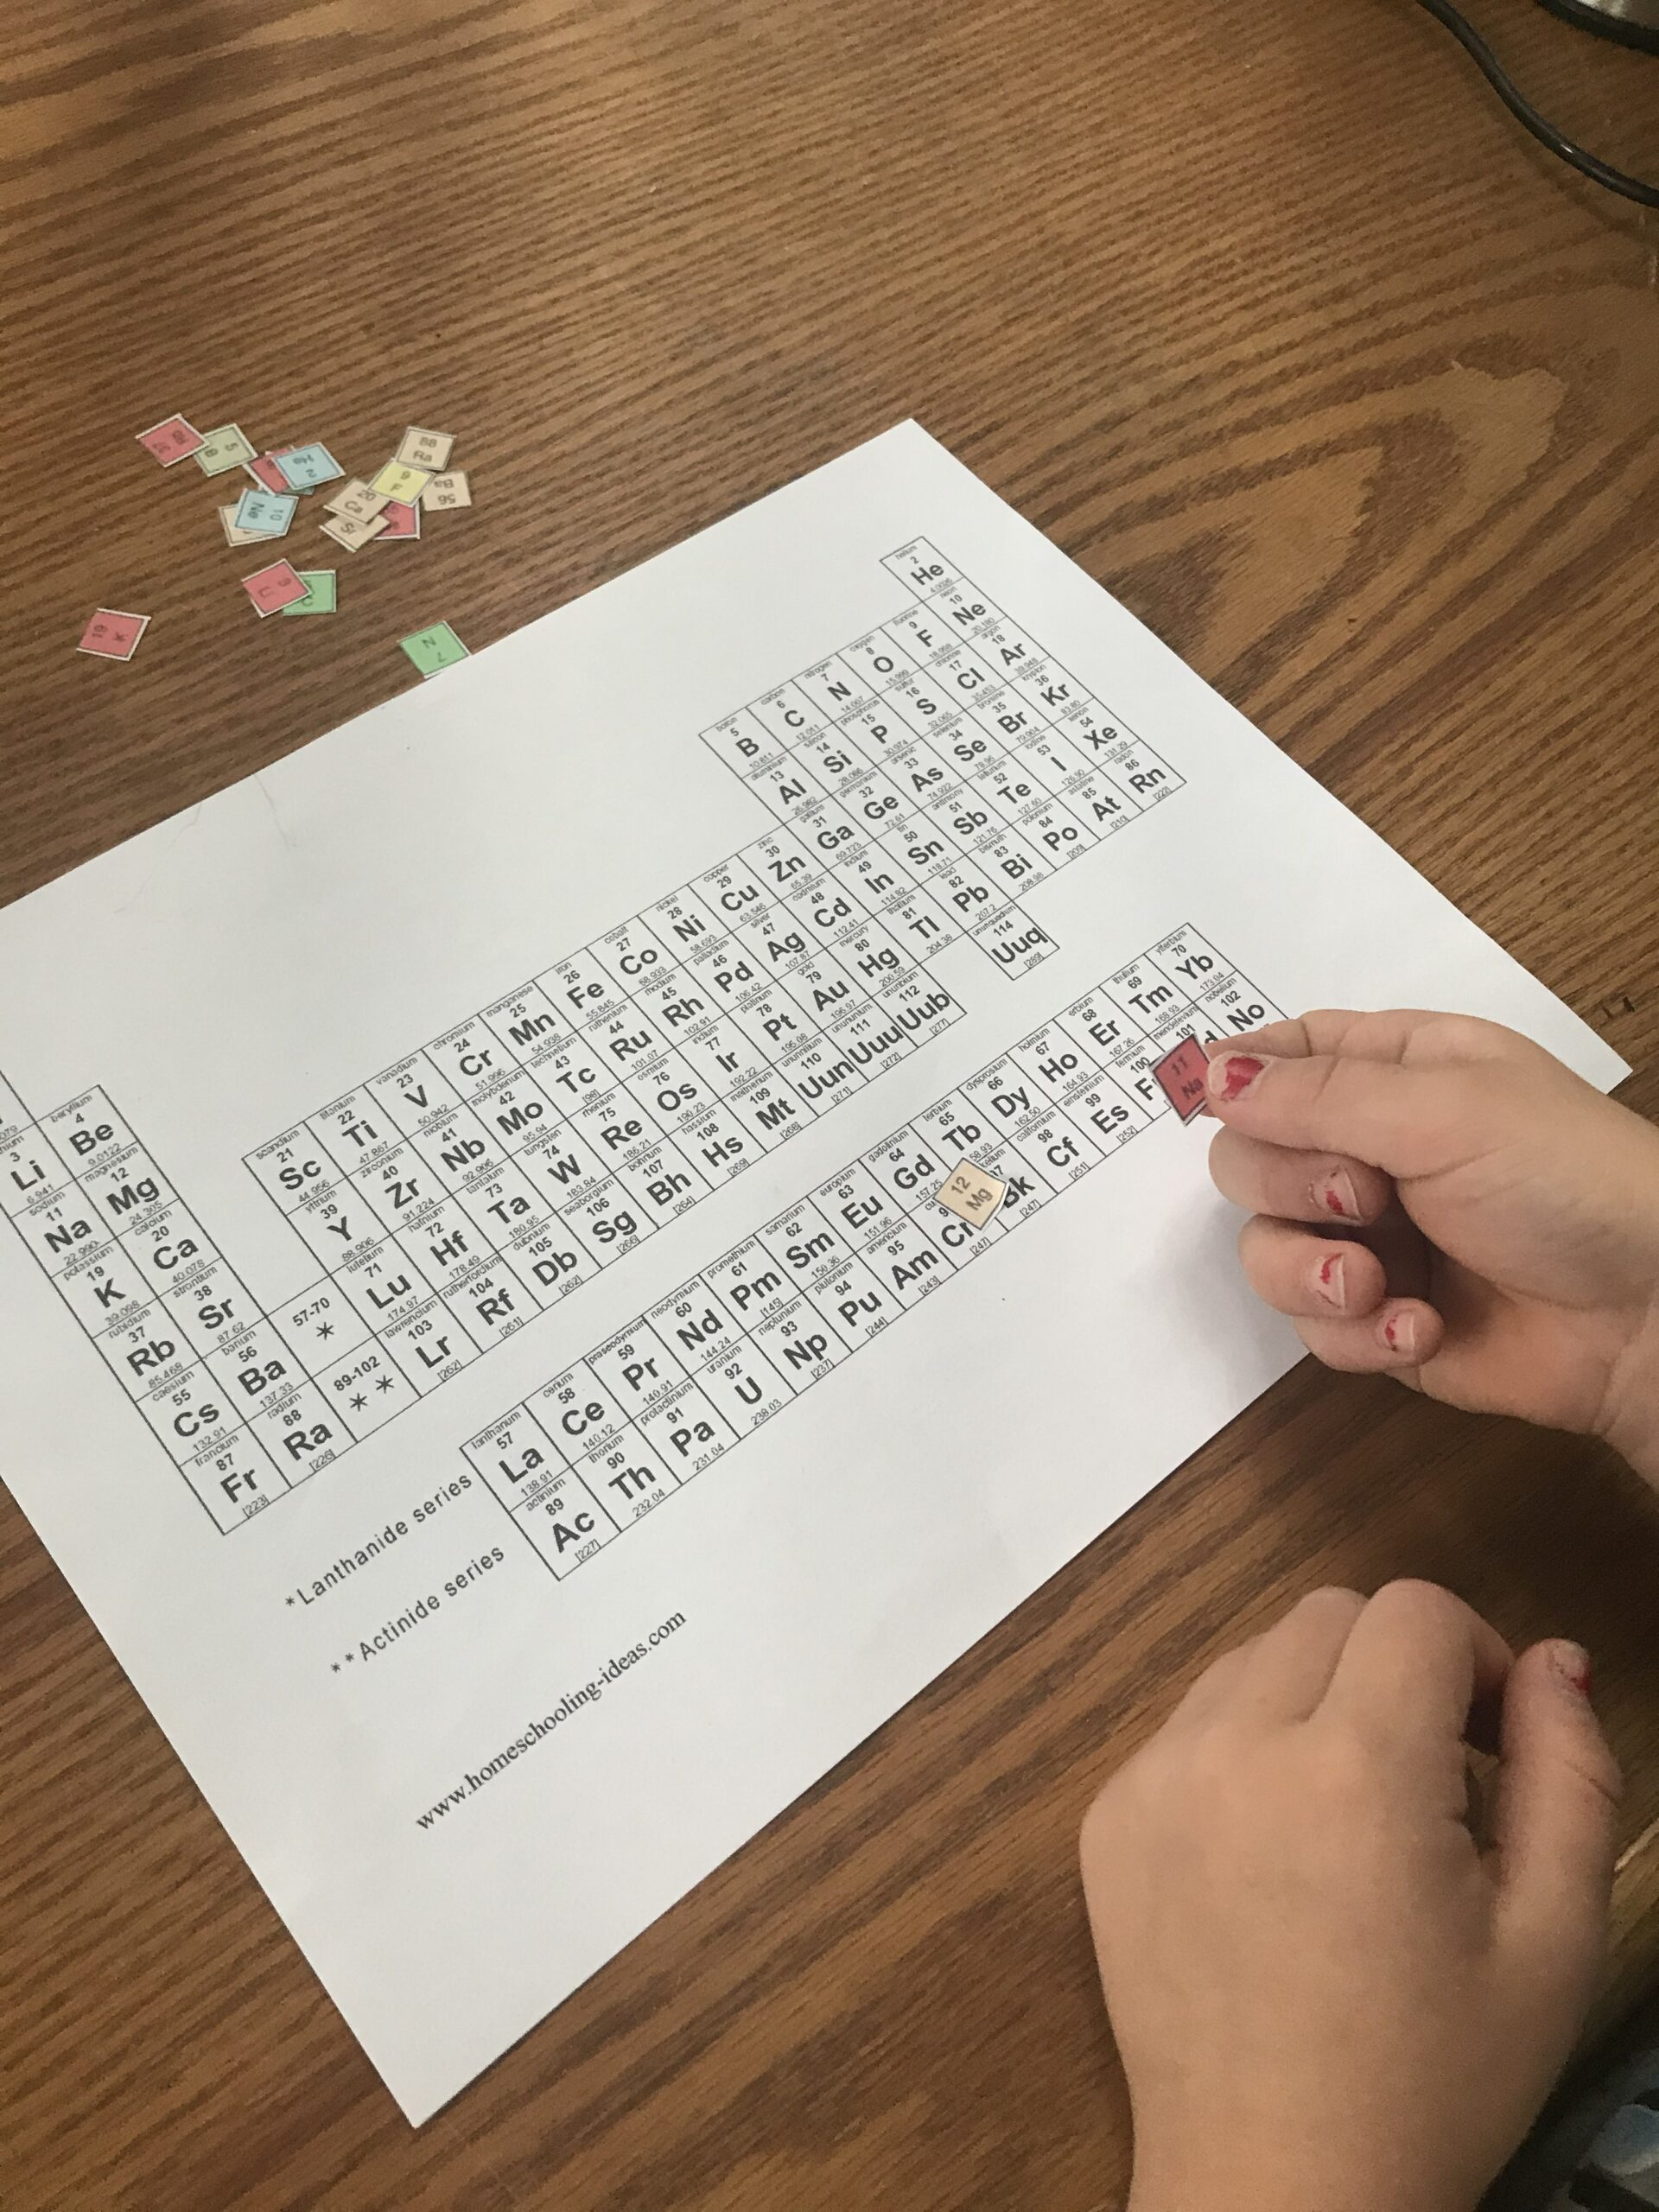 Chemistry activities for kids: multi-age learning unit on chemistry. Perfect for science enrichment or homeschool chemistry unit.